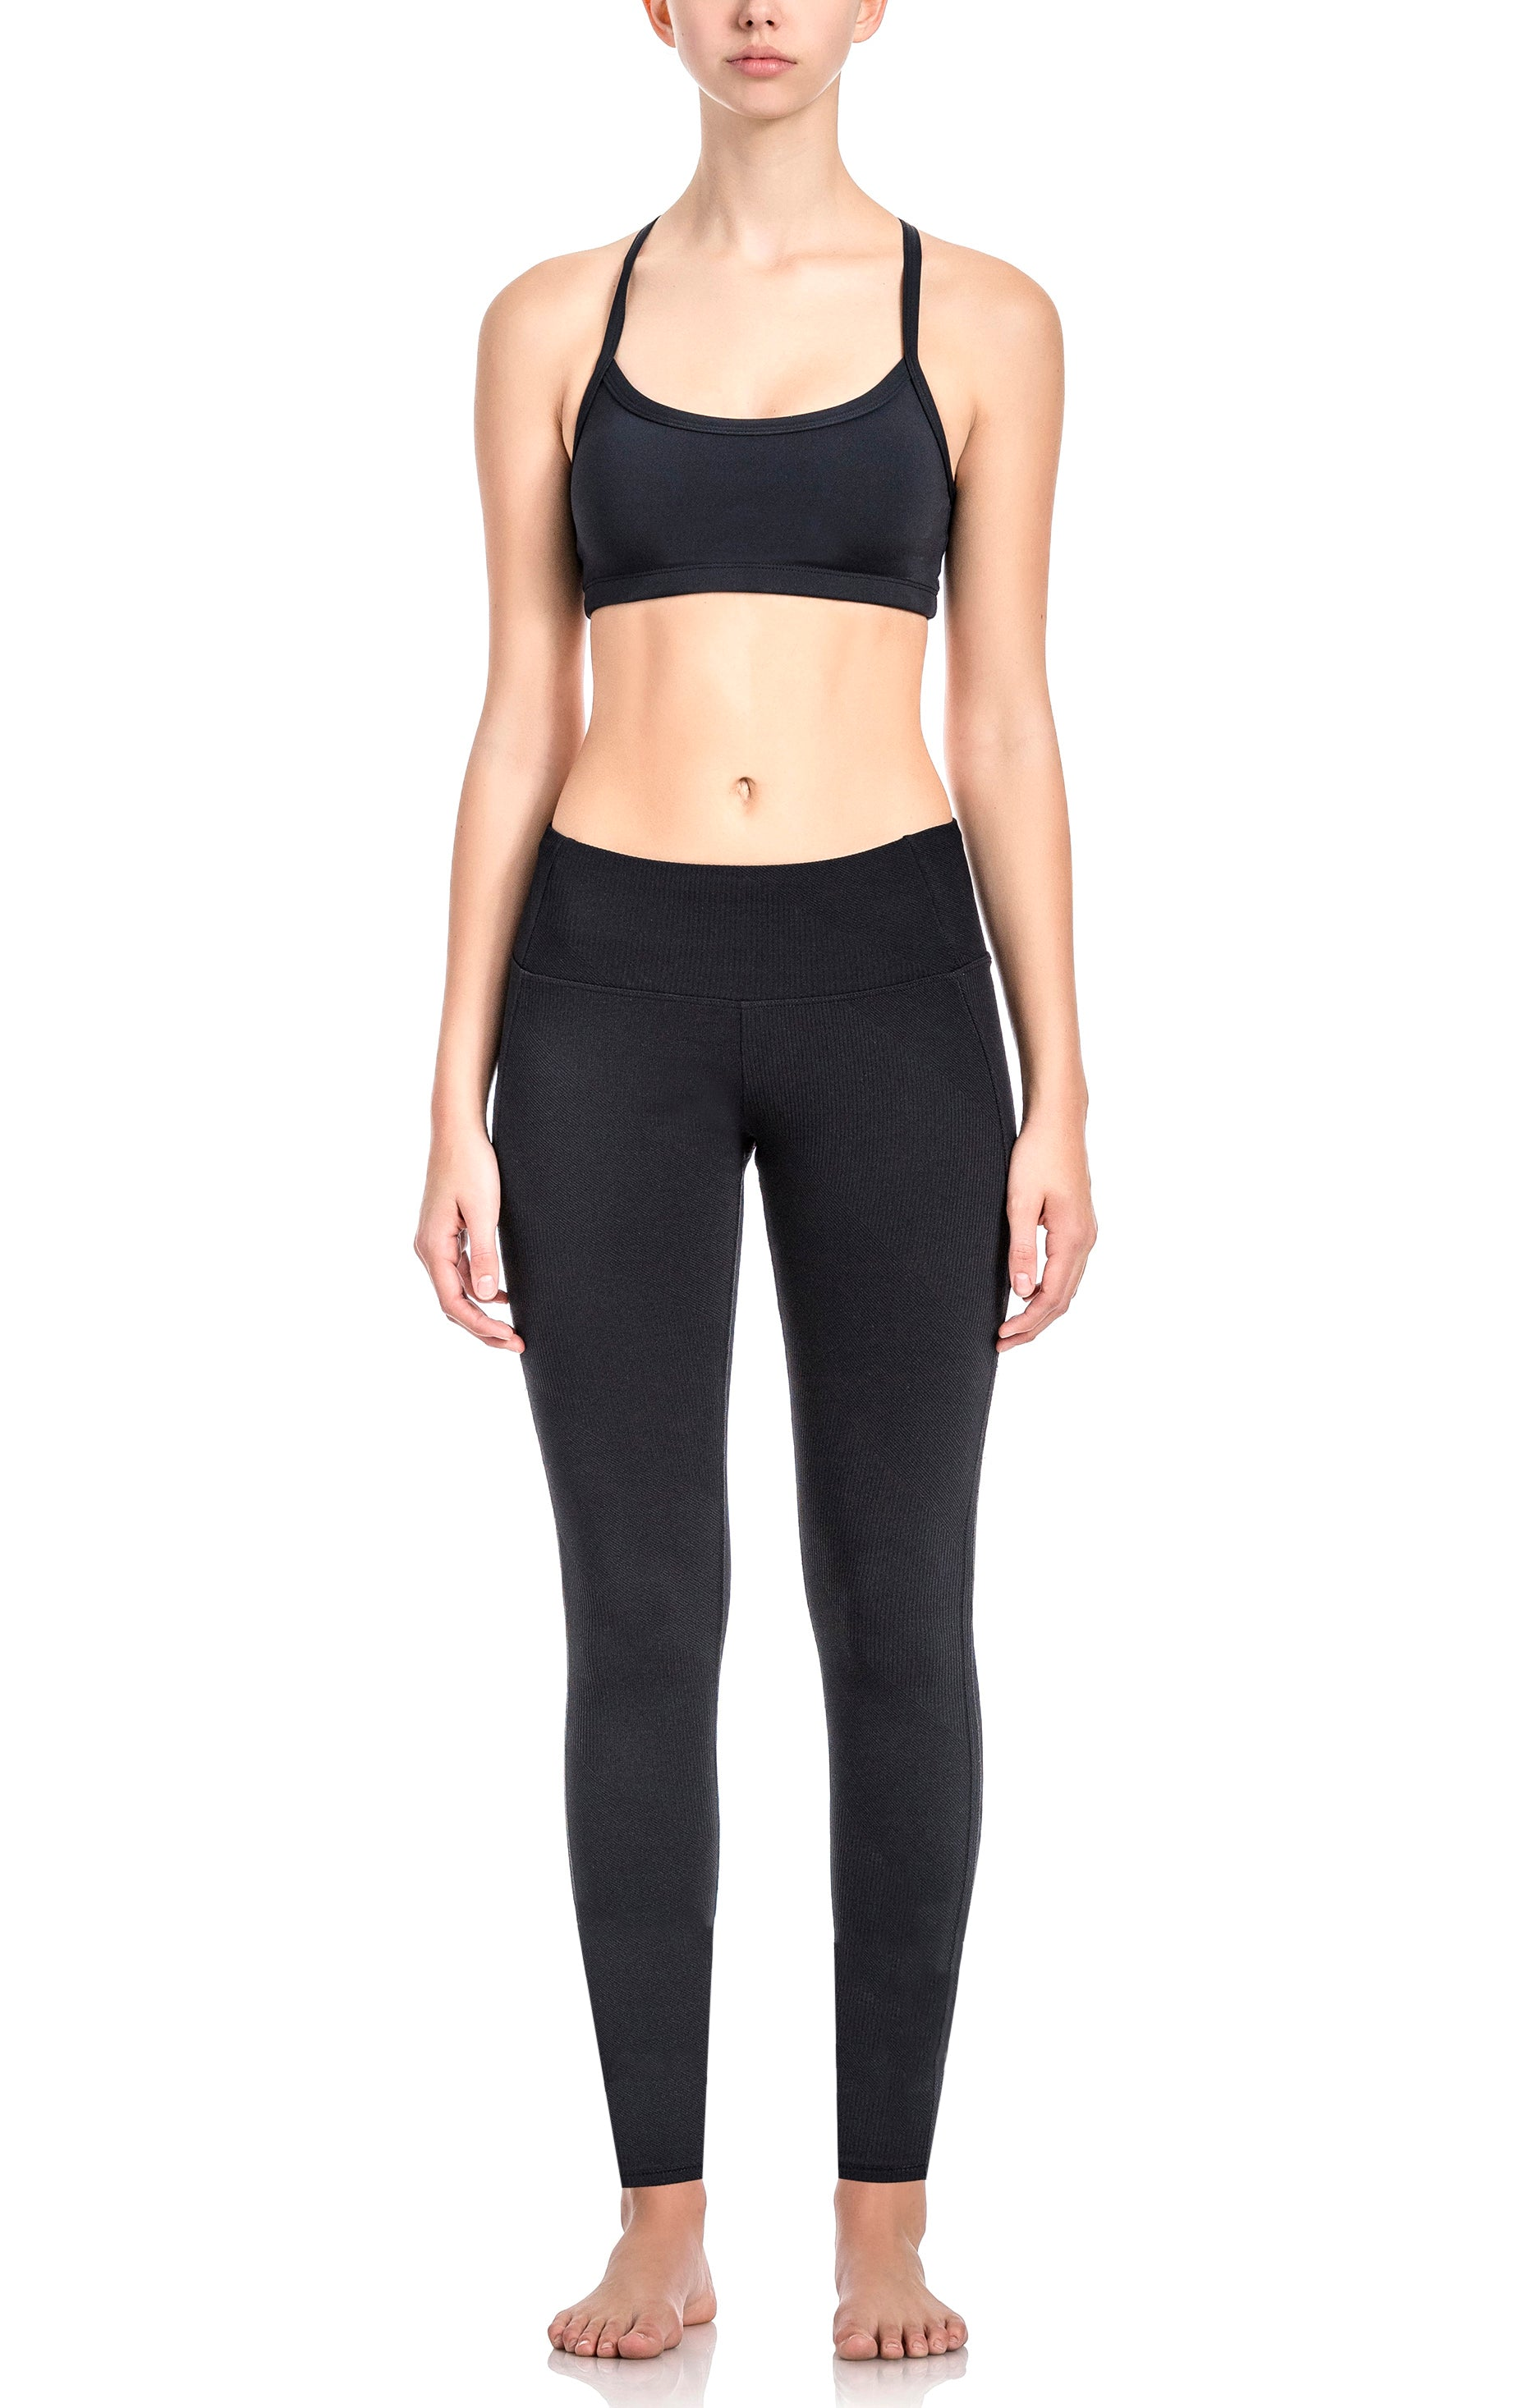 Karyn 7/8 Legging - Workout Bottoms